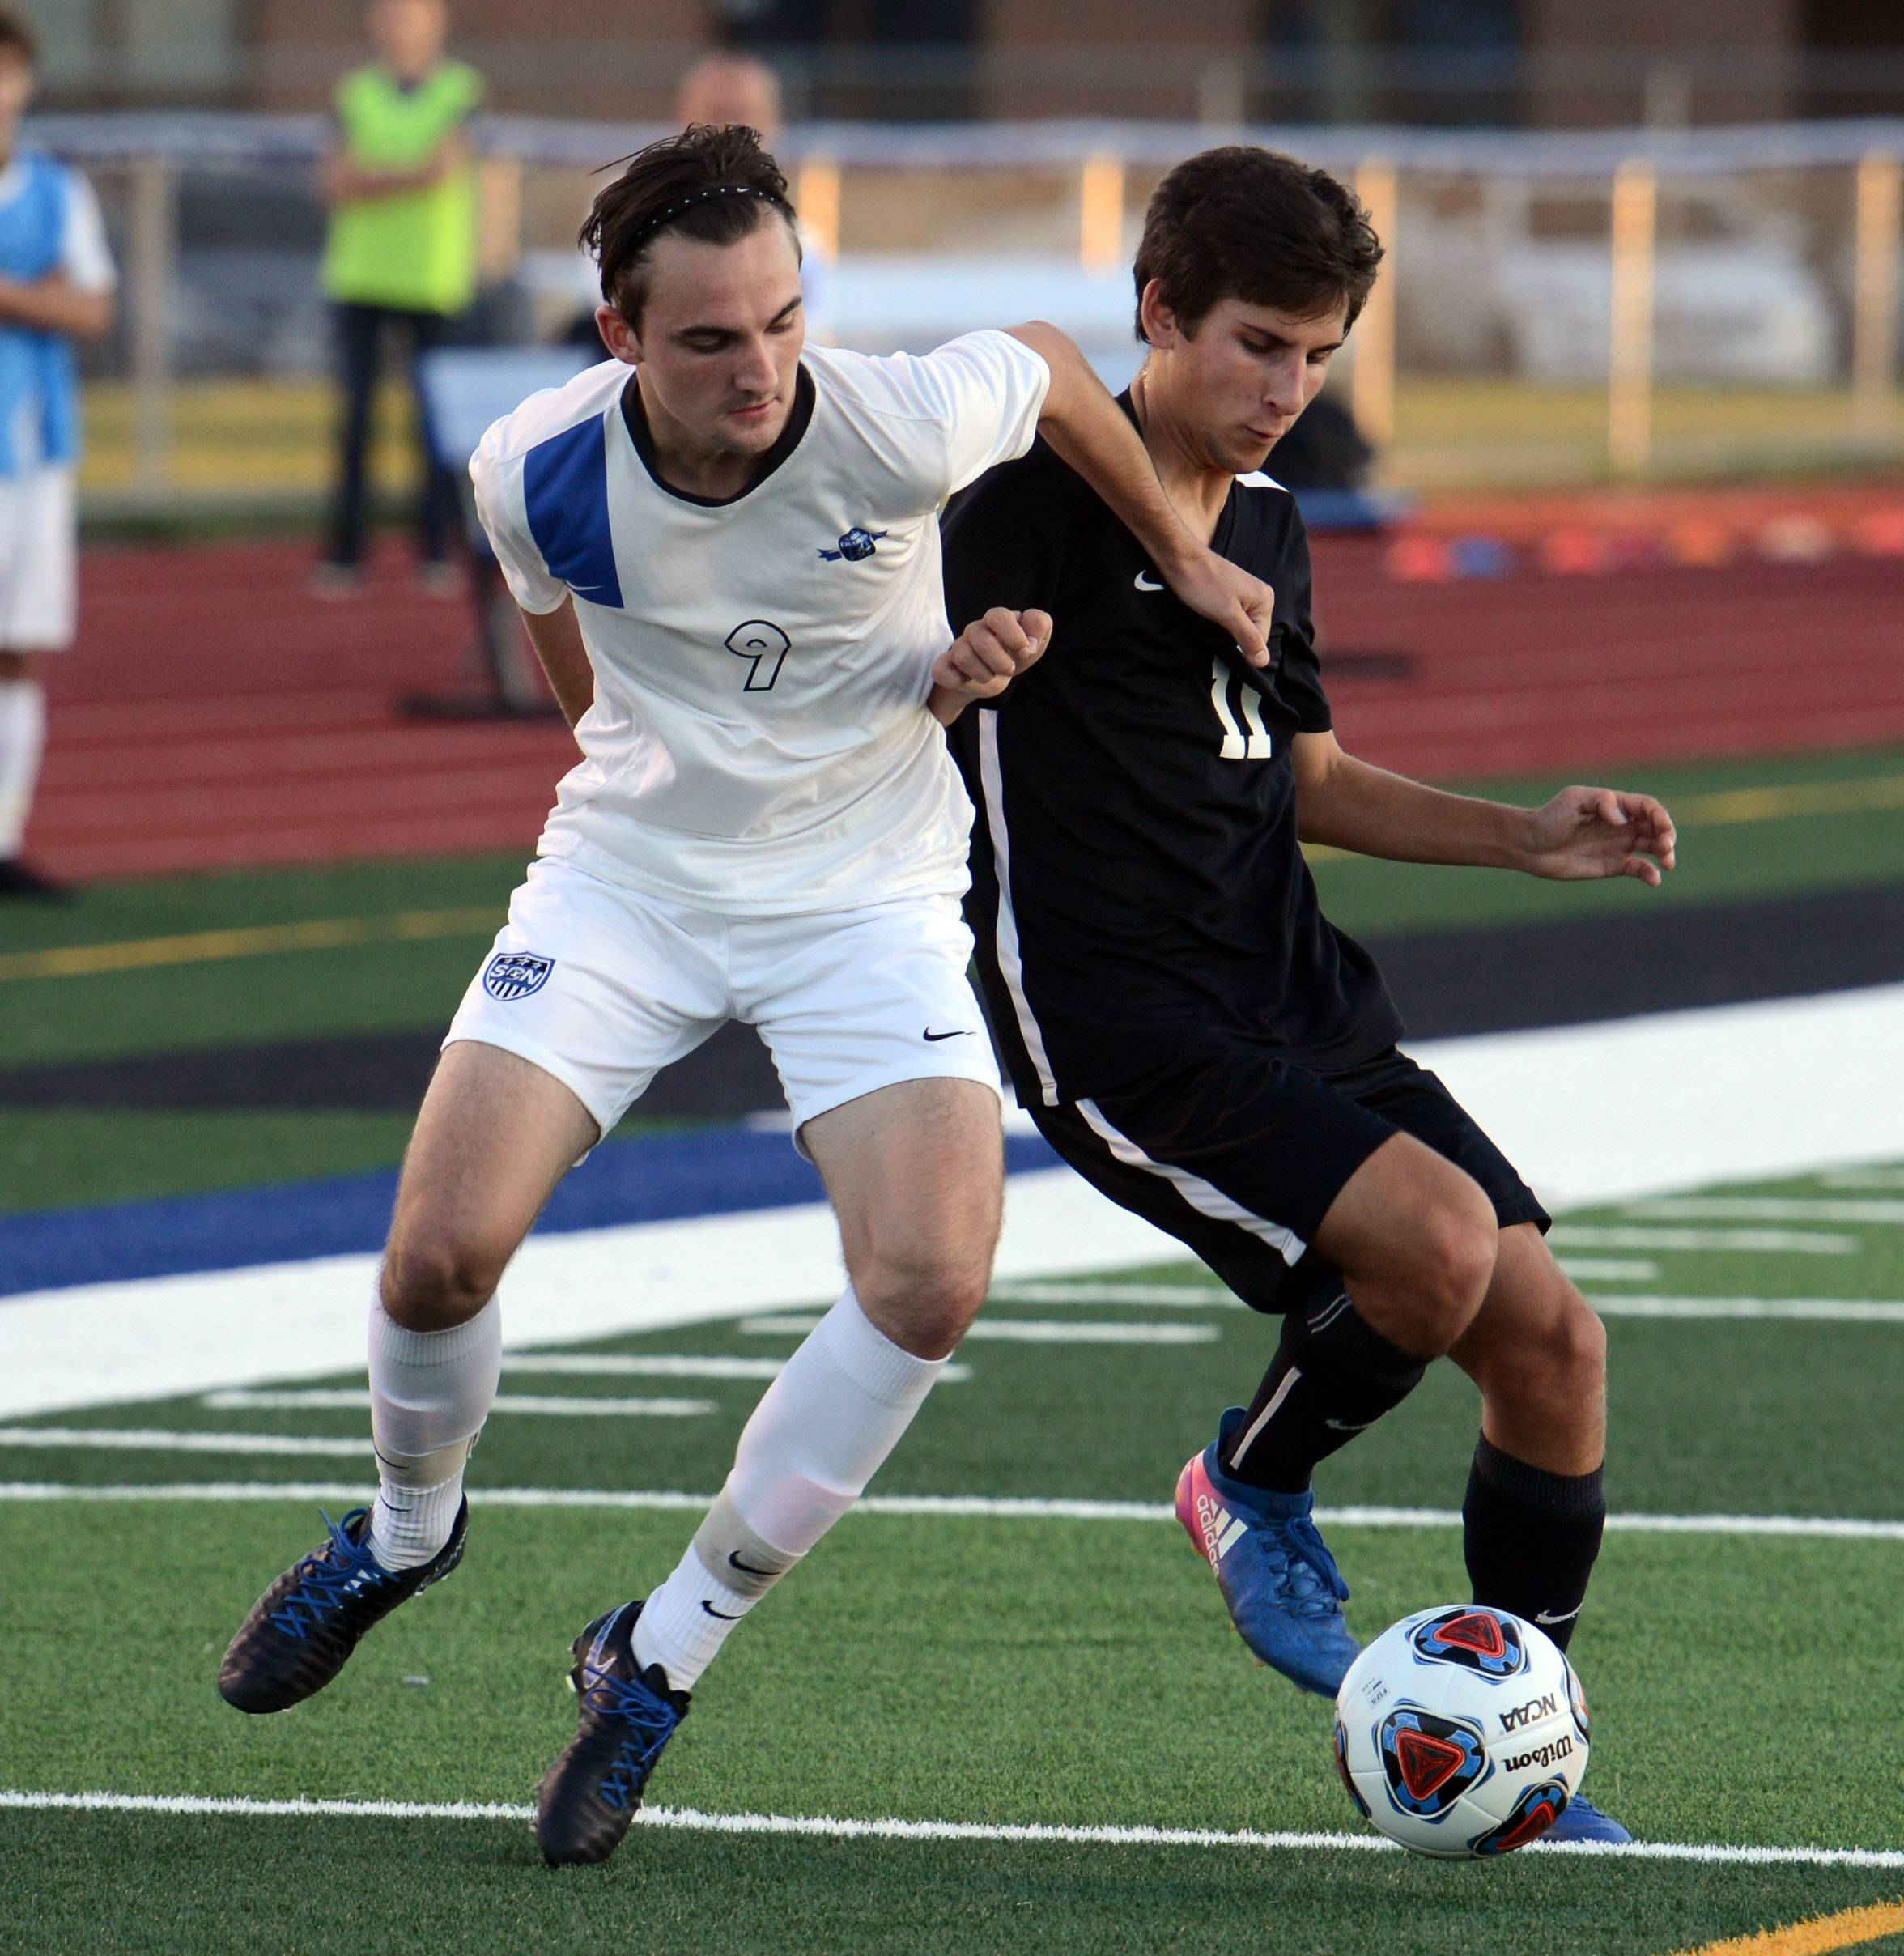 St. Charles North's Jake Persenico (9) battles Willowbrook's David Rizzo (11) for the ball during regional action at St. Charles North Tuesday.